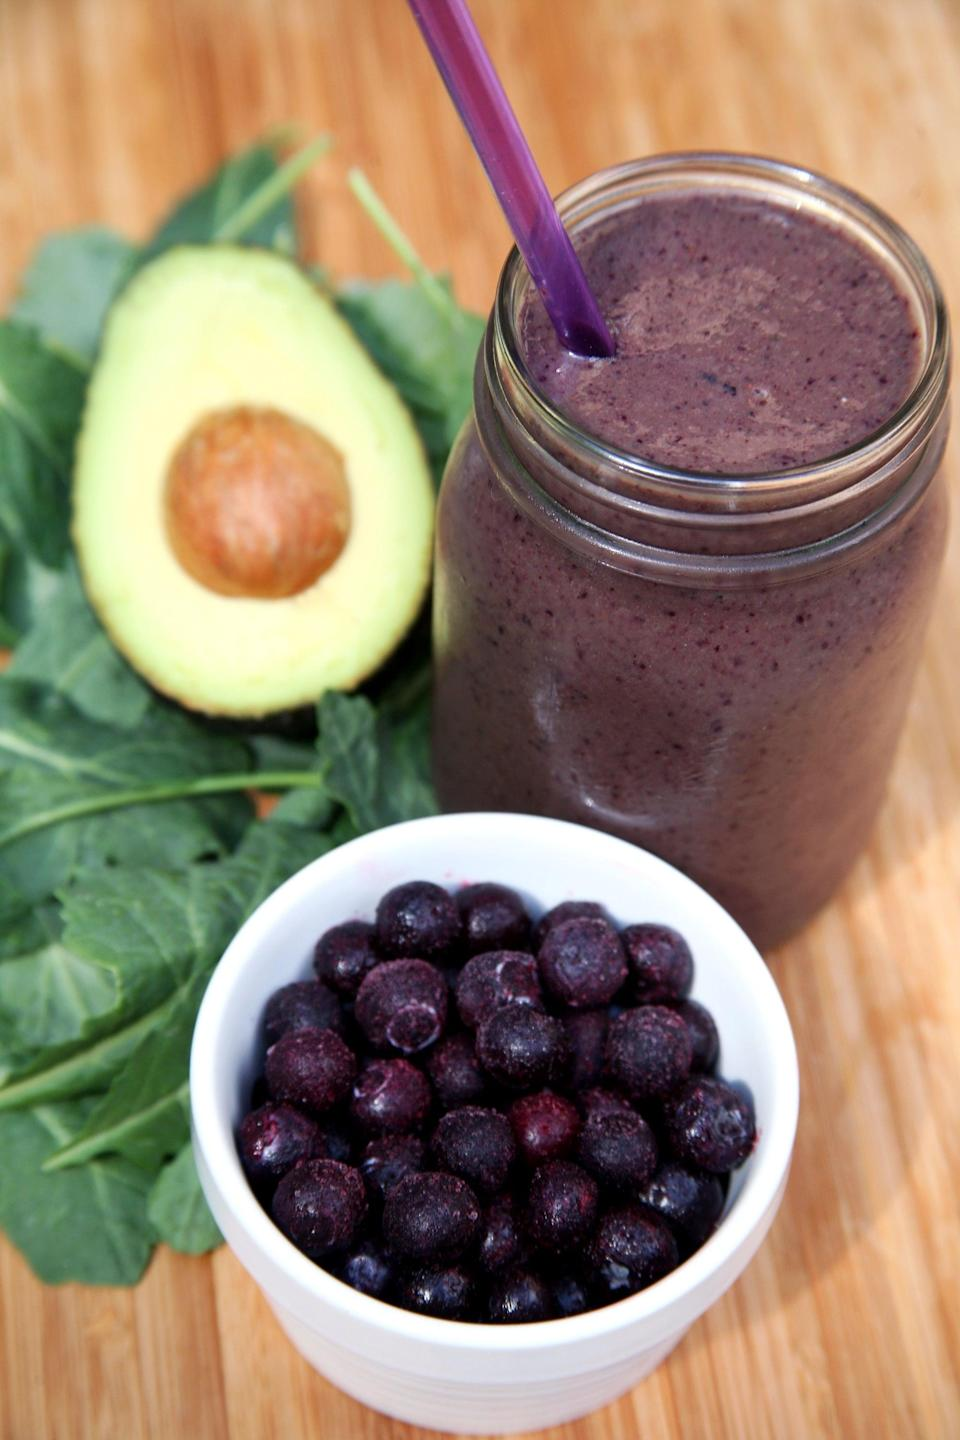 """<p>Greek yogurt is what makes this smoothie a delicious protein star. The added blueberries, pineapple, and kale up the nutrients and fiber to make it a next-level breakfast.</p> <p><strong>Protein:</strong> 15 grams</p> <p><strong>Get the recipe:</strong> <a href=""""https://www.popsugar.com/fitness/photo-gallery/35401577/image/35505906/Smoothie-Recipe-1-Dairy"""" class=""""link rapid-noclick-resp"""" rel=""""nofollow noopener"""" target=""""_blank"""" data-ylk=""""slk:pineapple kale smoothie"""">pineapple kale smoothie</a></p>"""